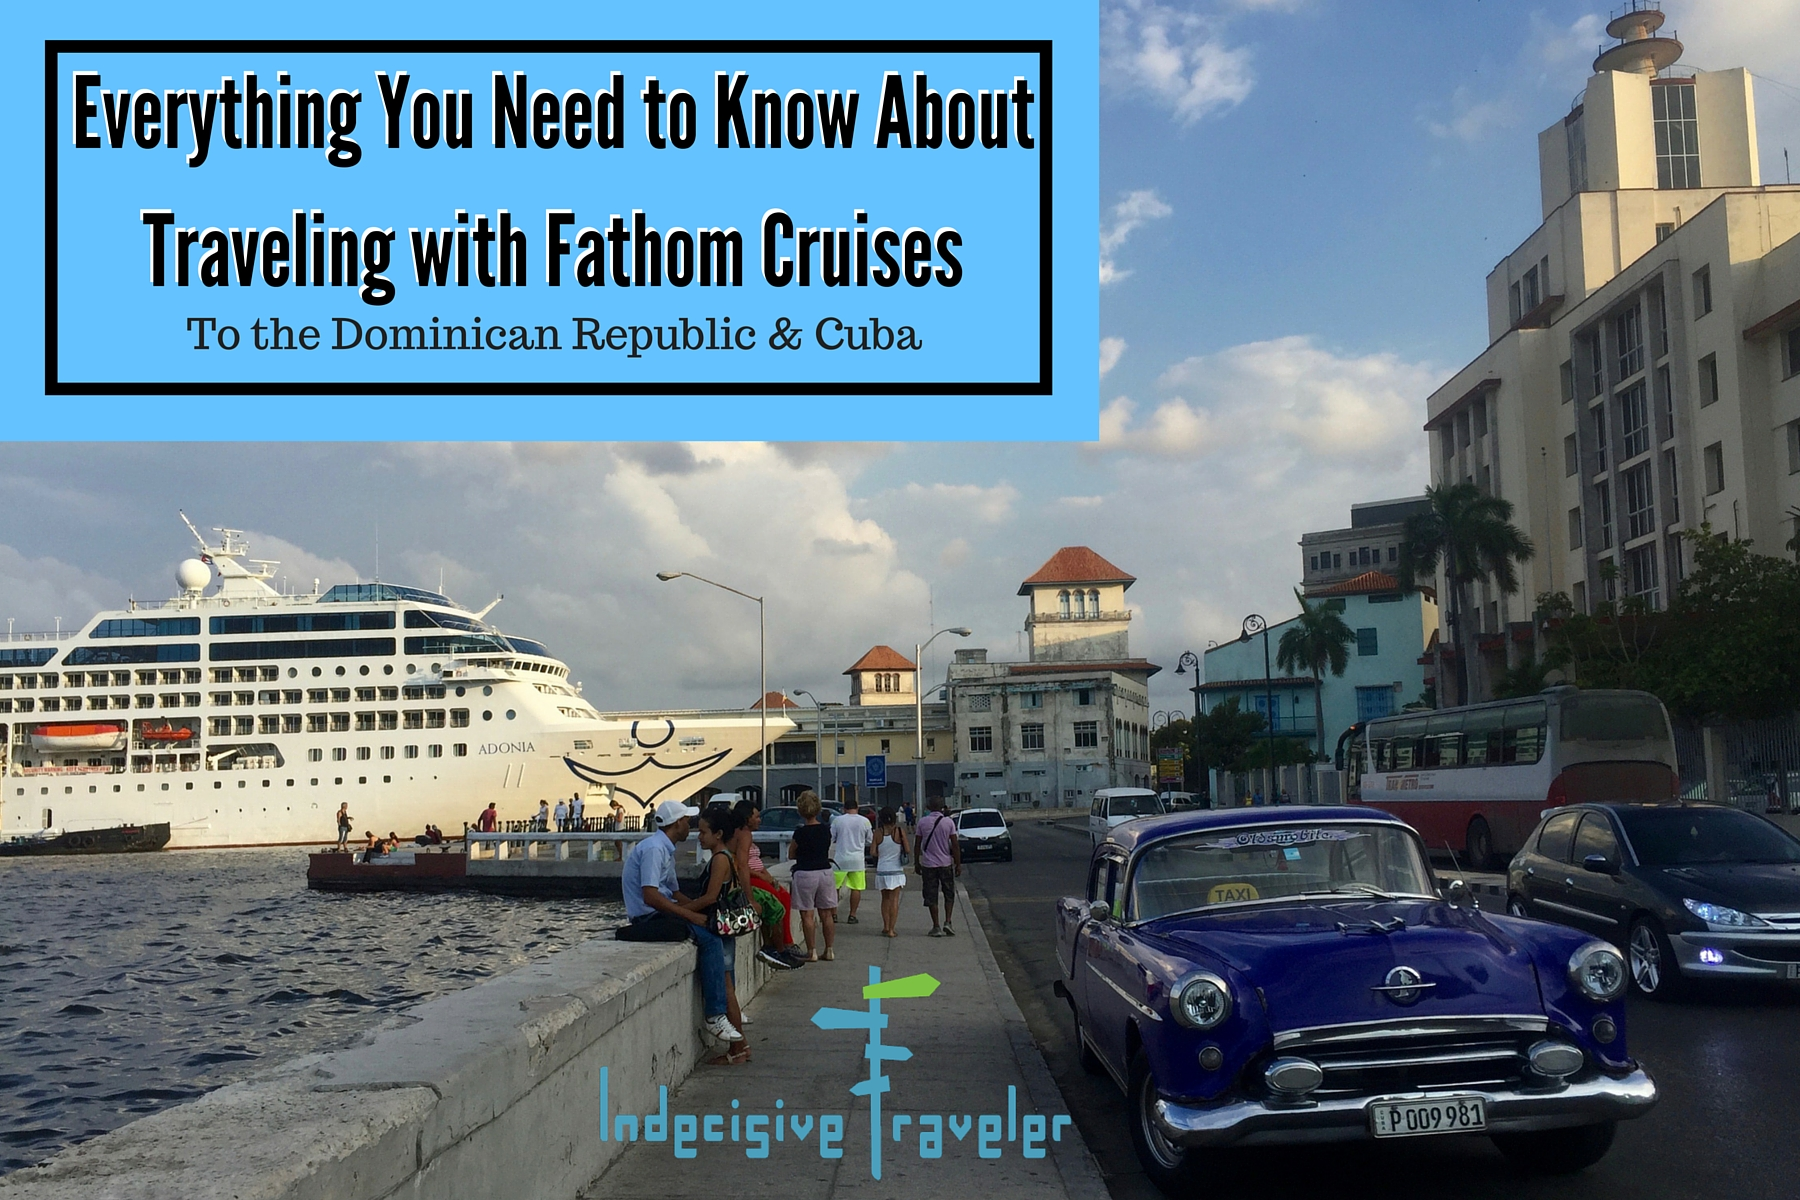 Everything you need to know about traveling with Fathom Cruises